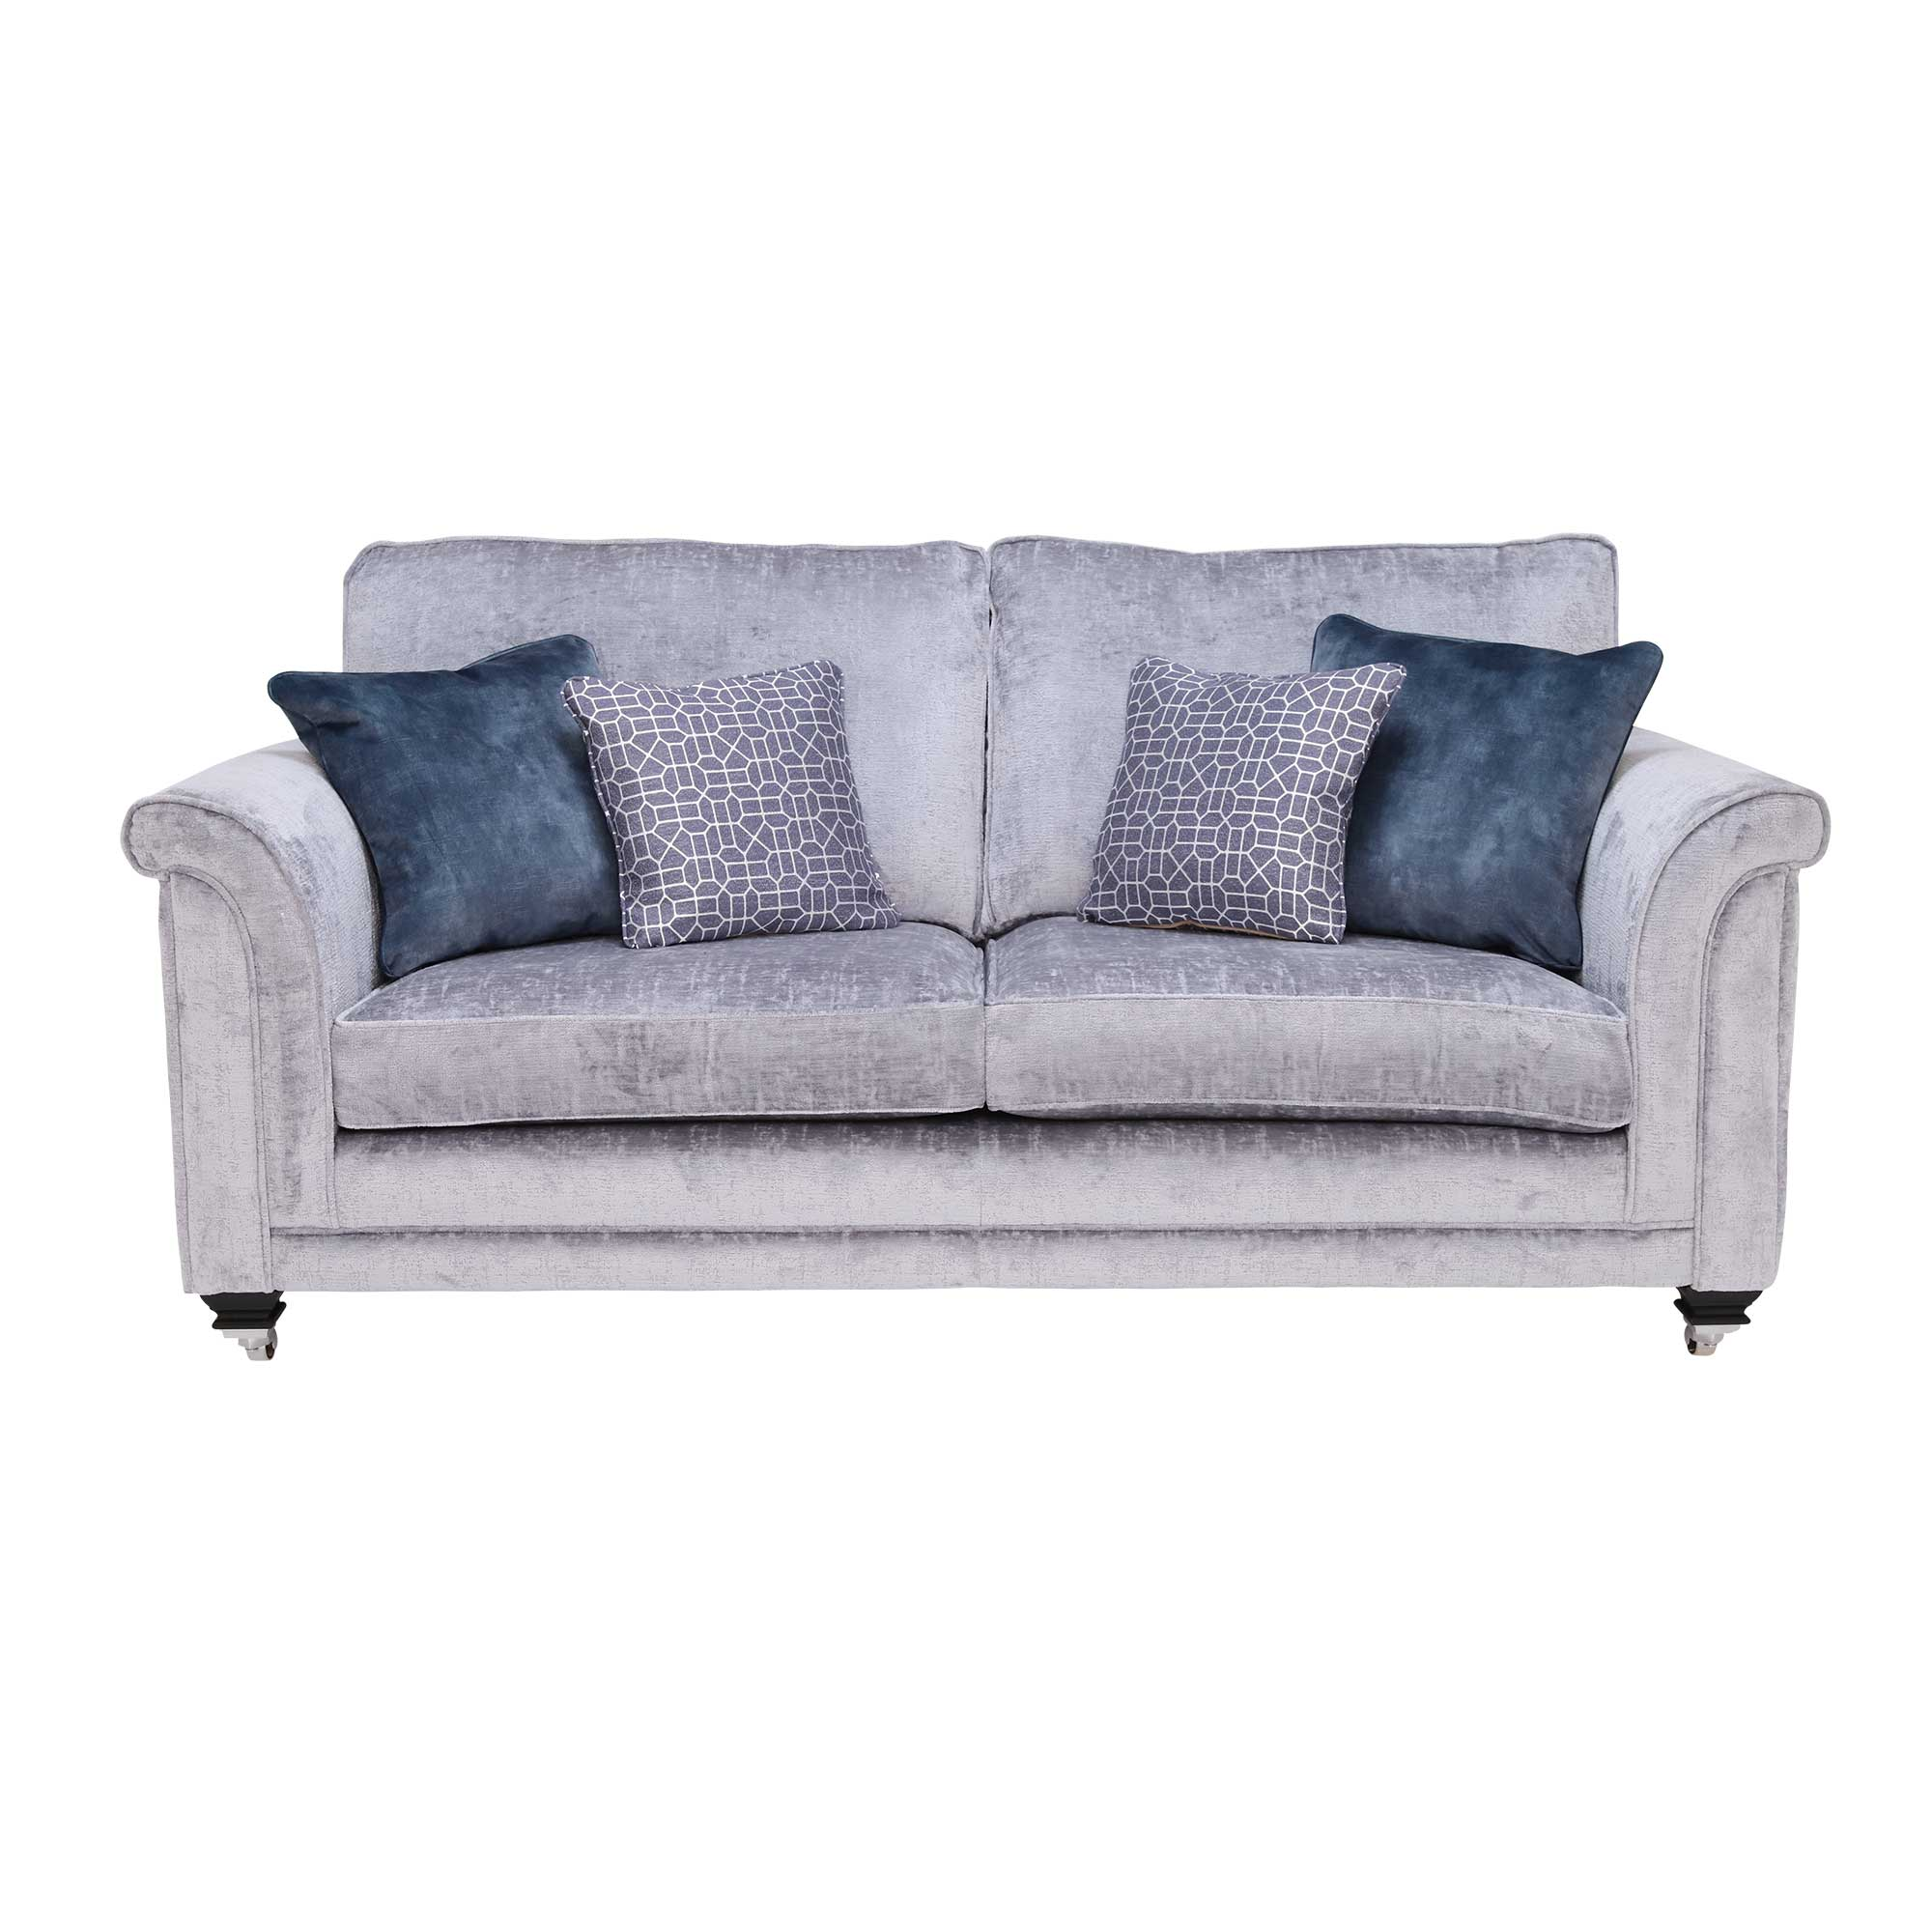 FIDELMA 3 SEATER - FRONT DETAIL